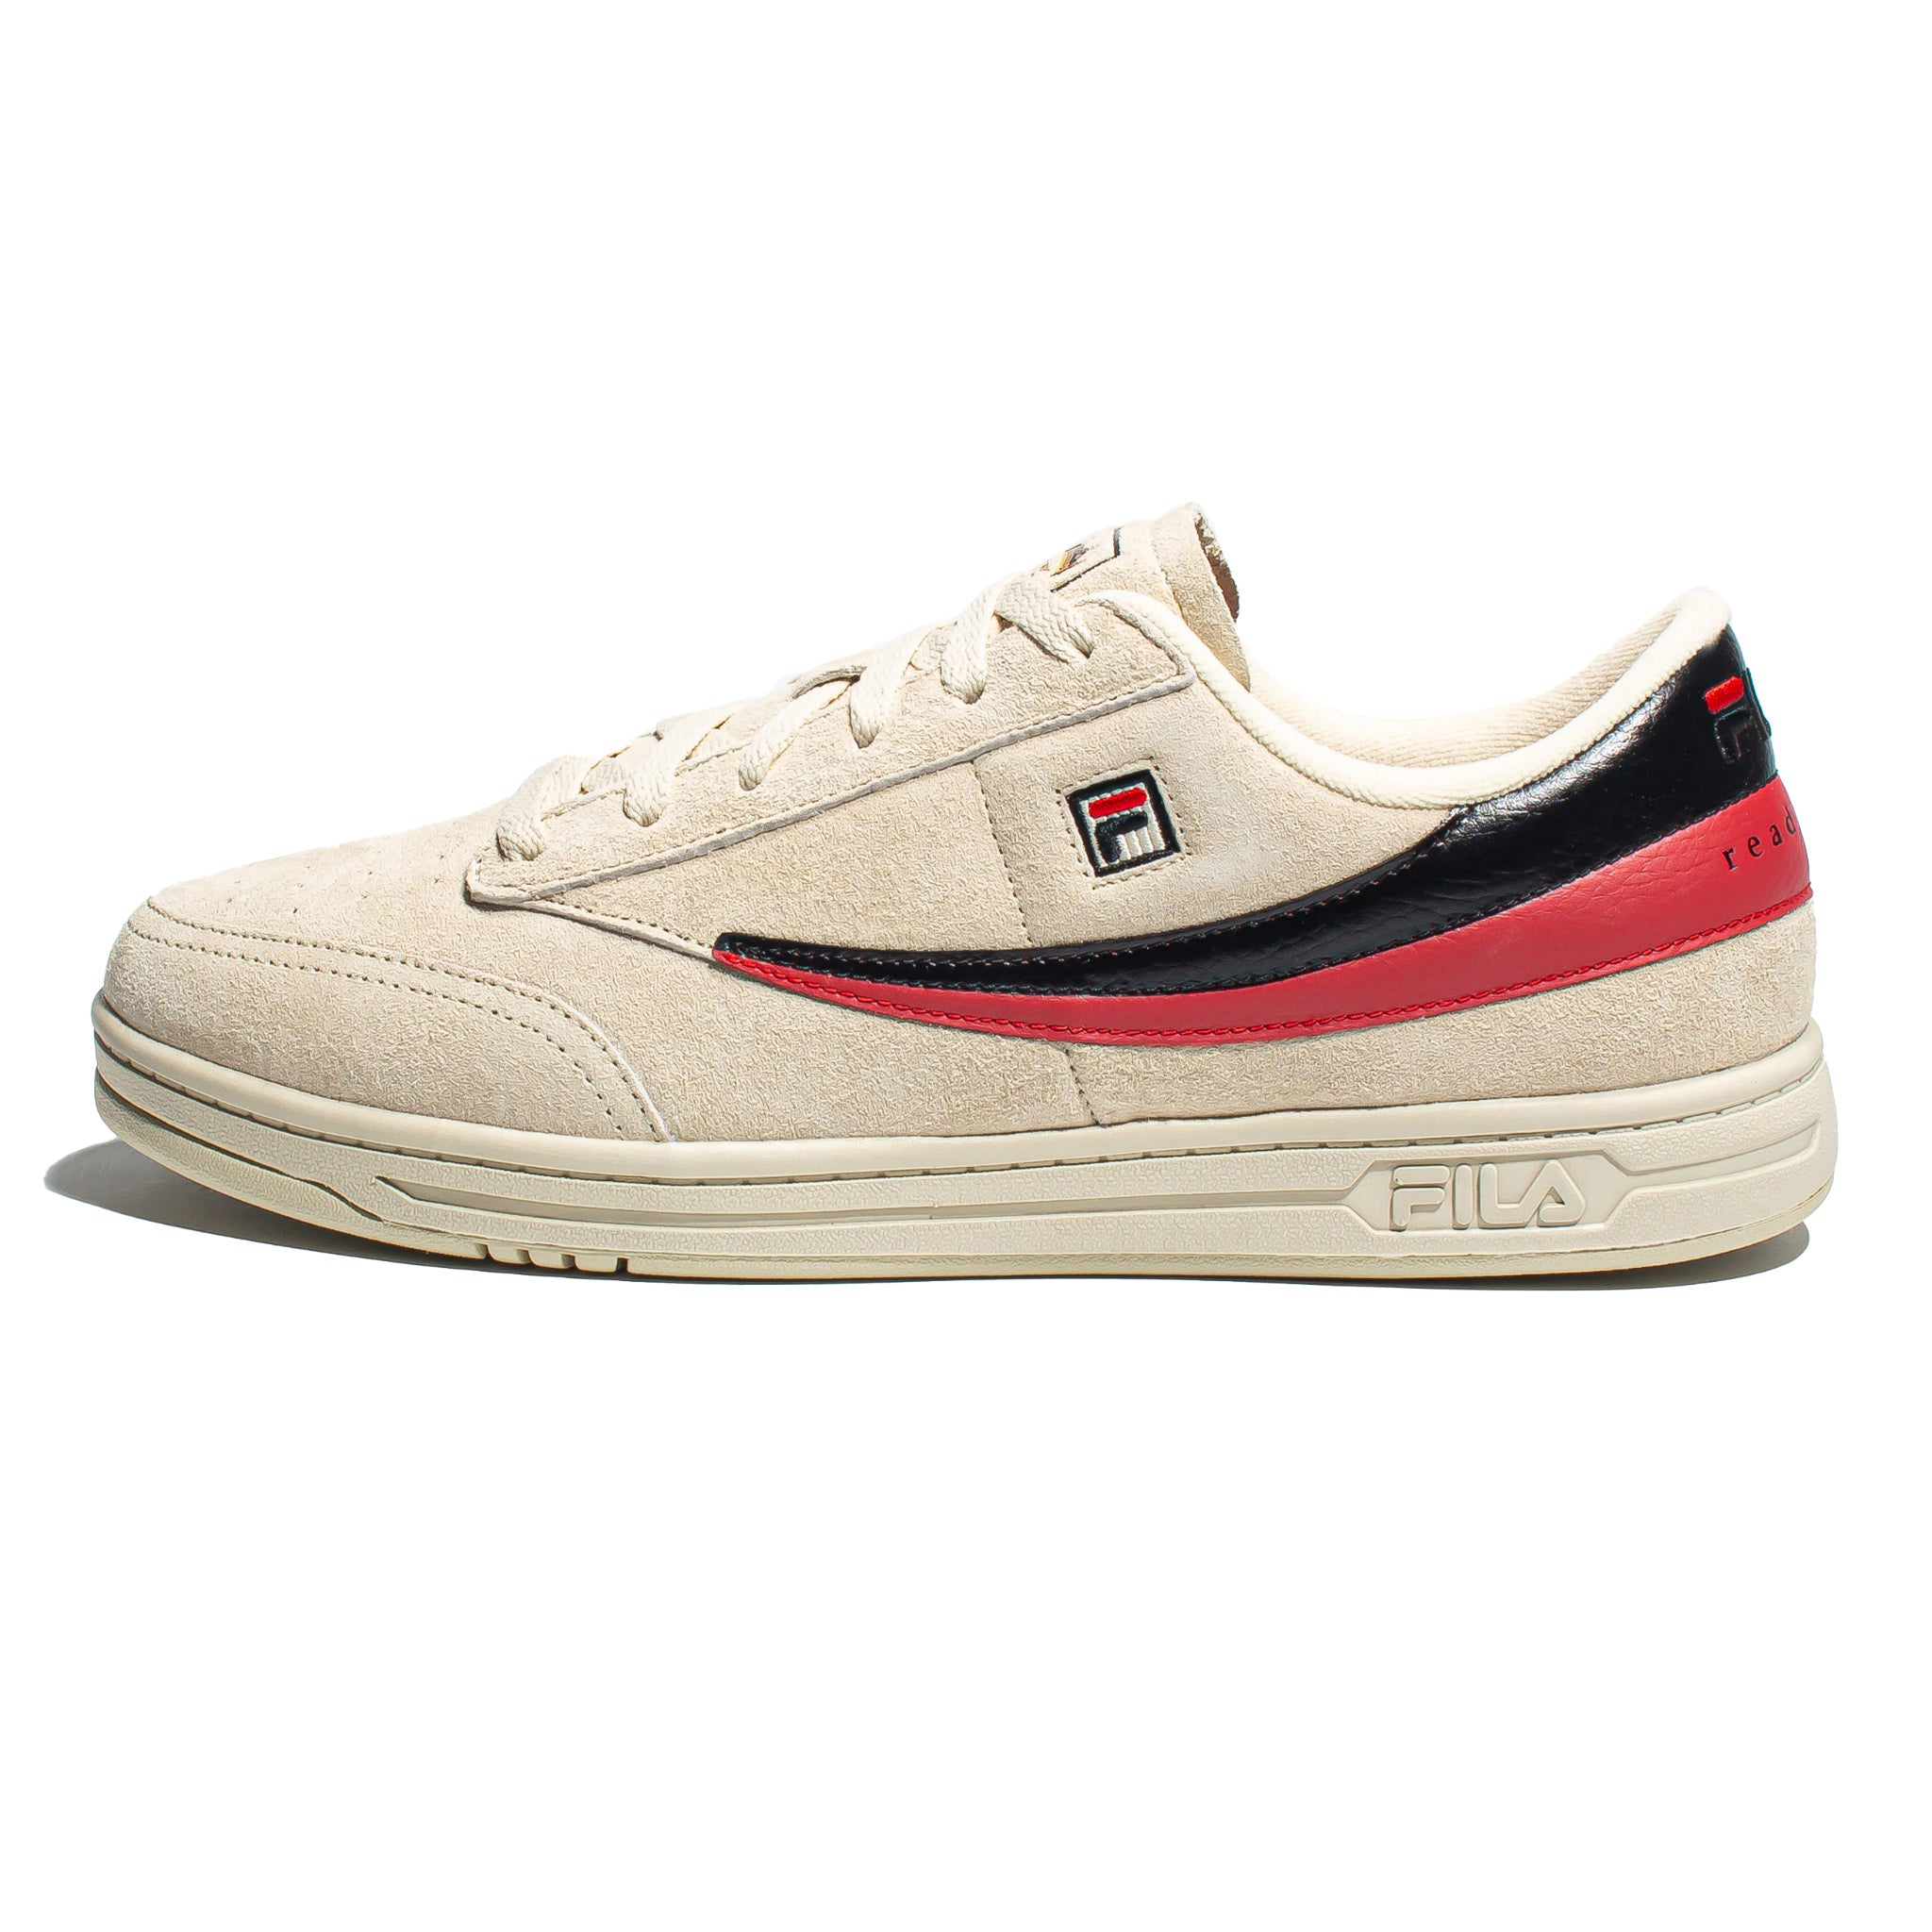 Fila x Biggie 'Ready to Die' Tennis 88 Cream/Red